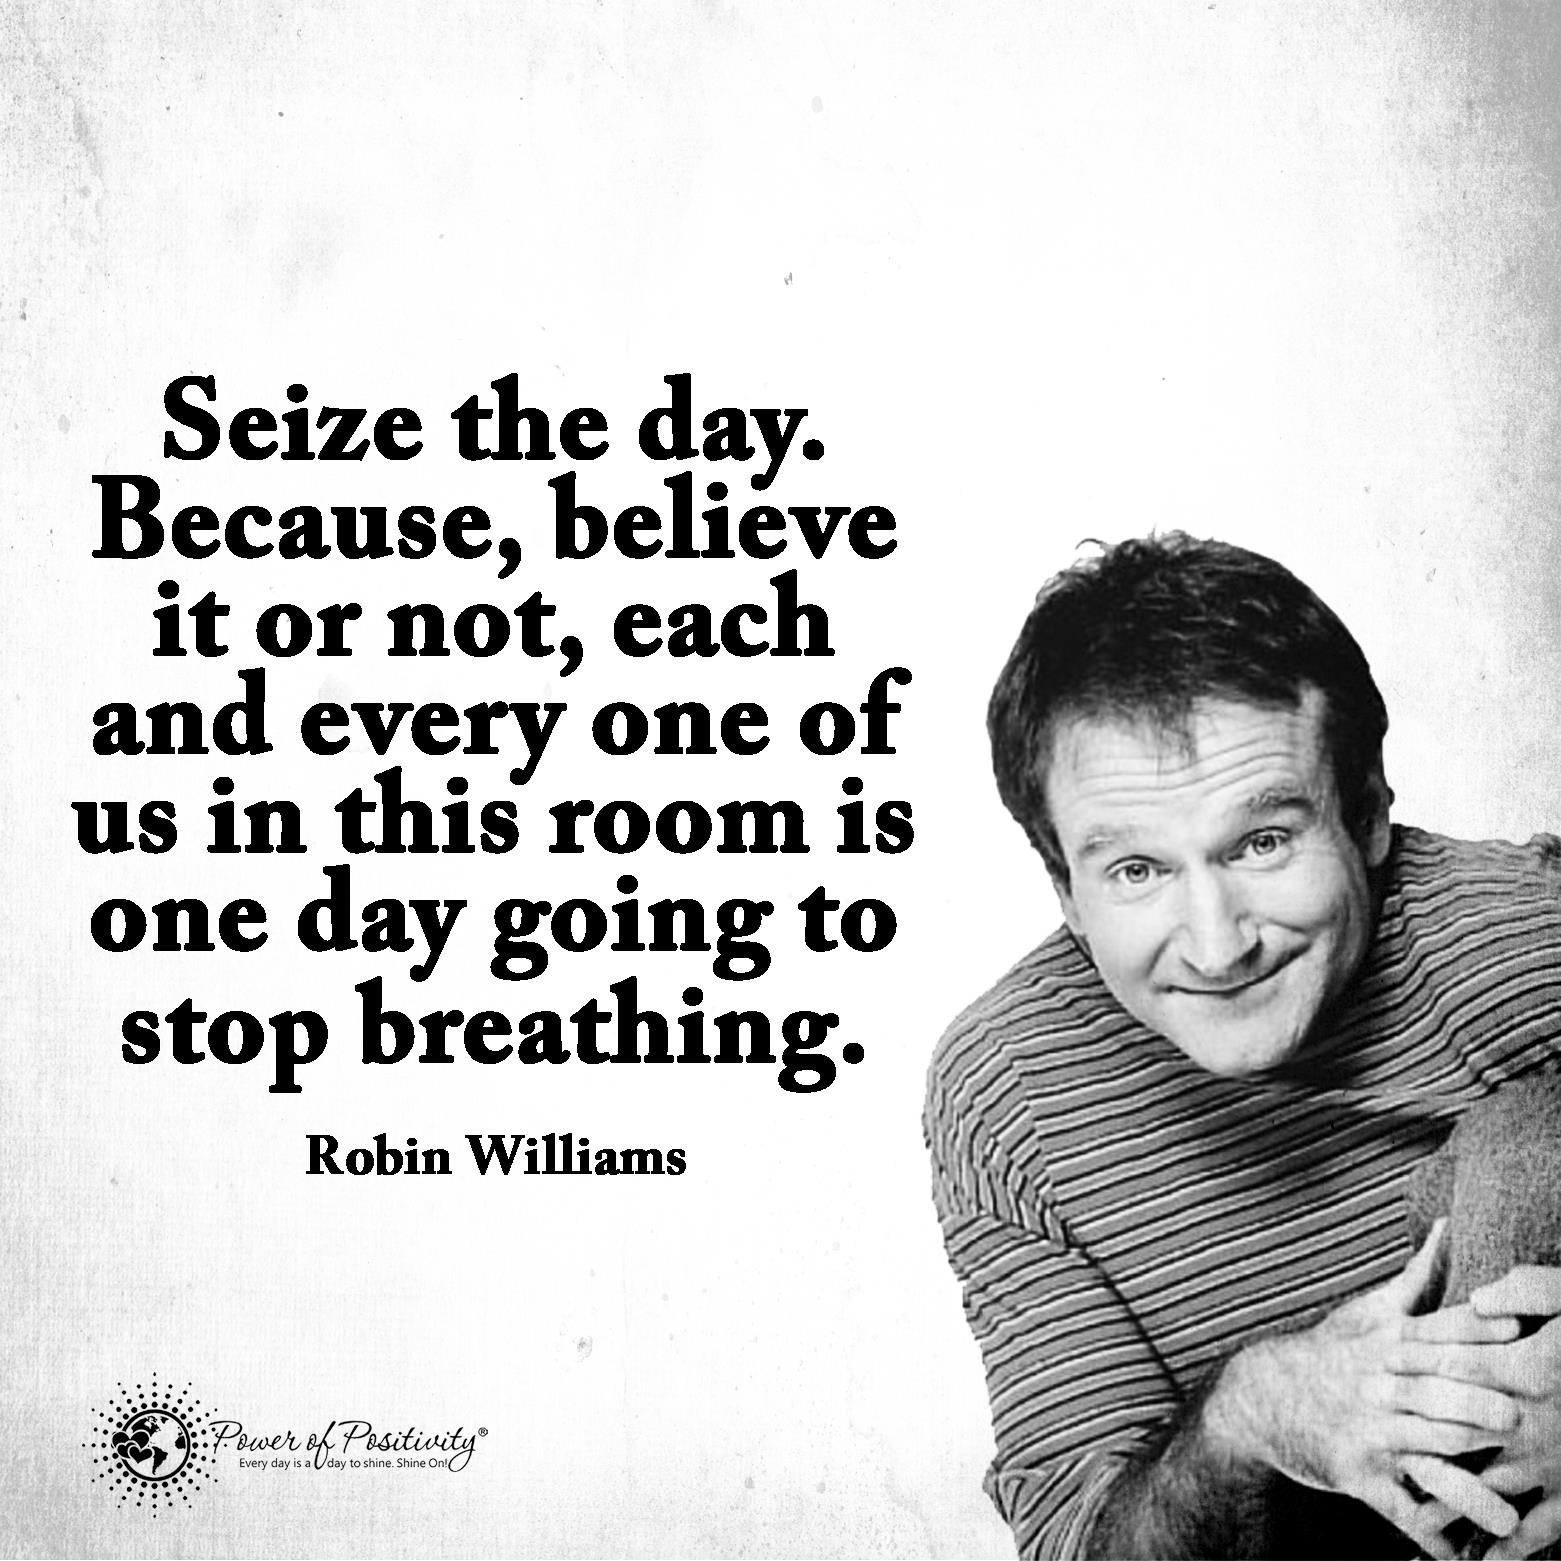 Robin Williams Quotes On Life  11 Life Lessons to Learn From Robin Williams